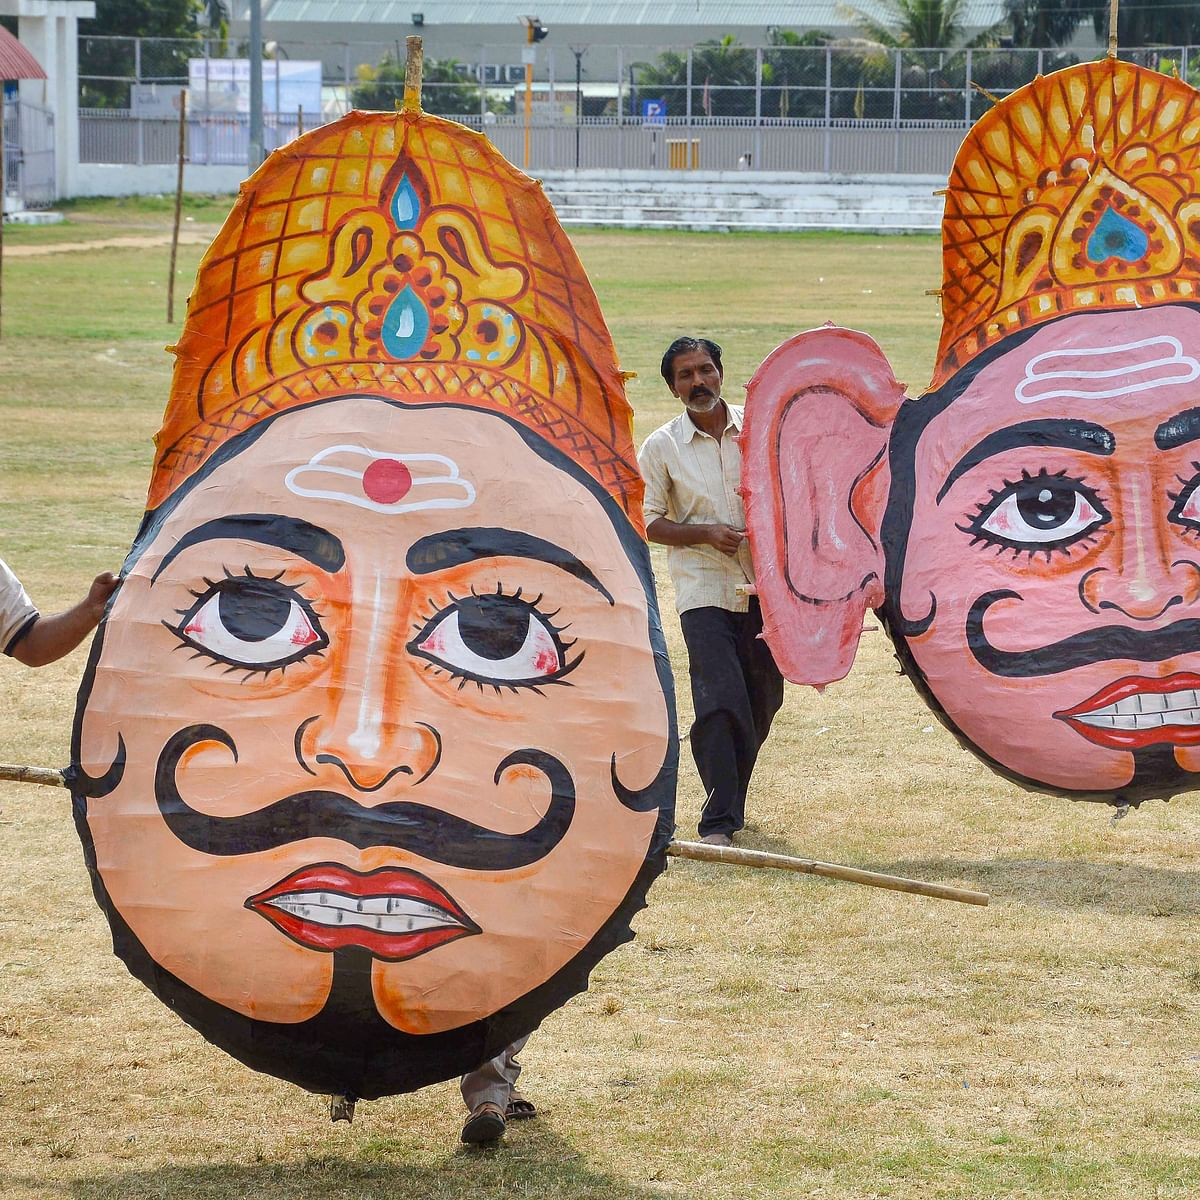 Delhi: No preparations, pending permissions amid COVID-19 play dampener this Dussehra